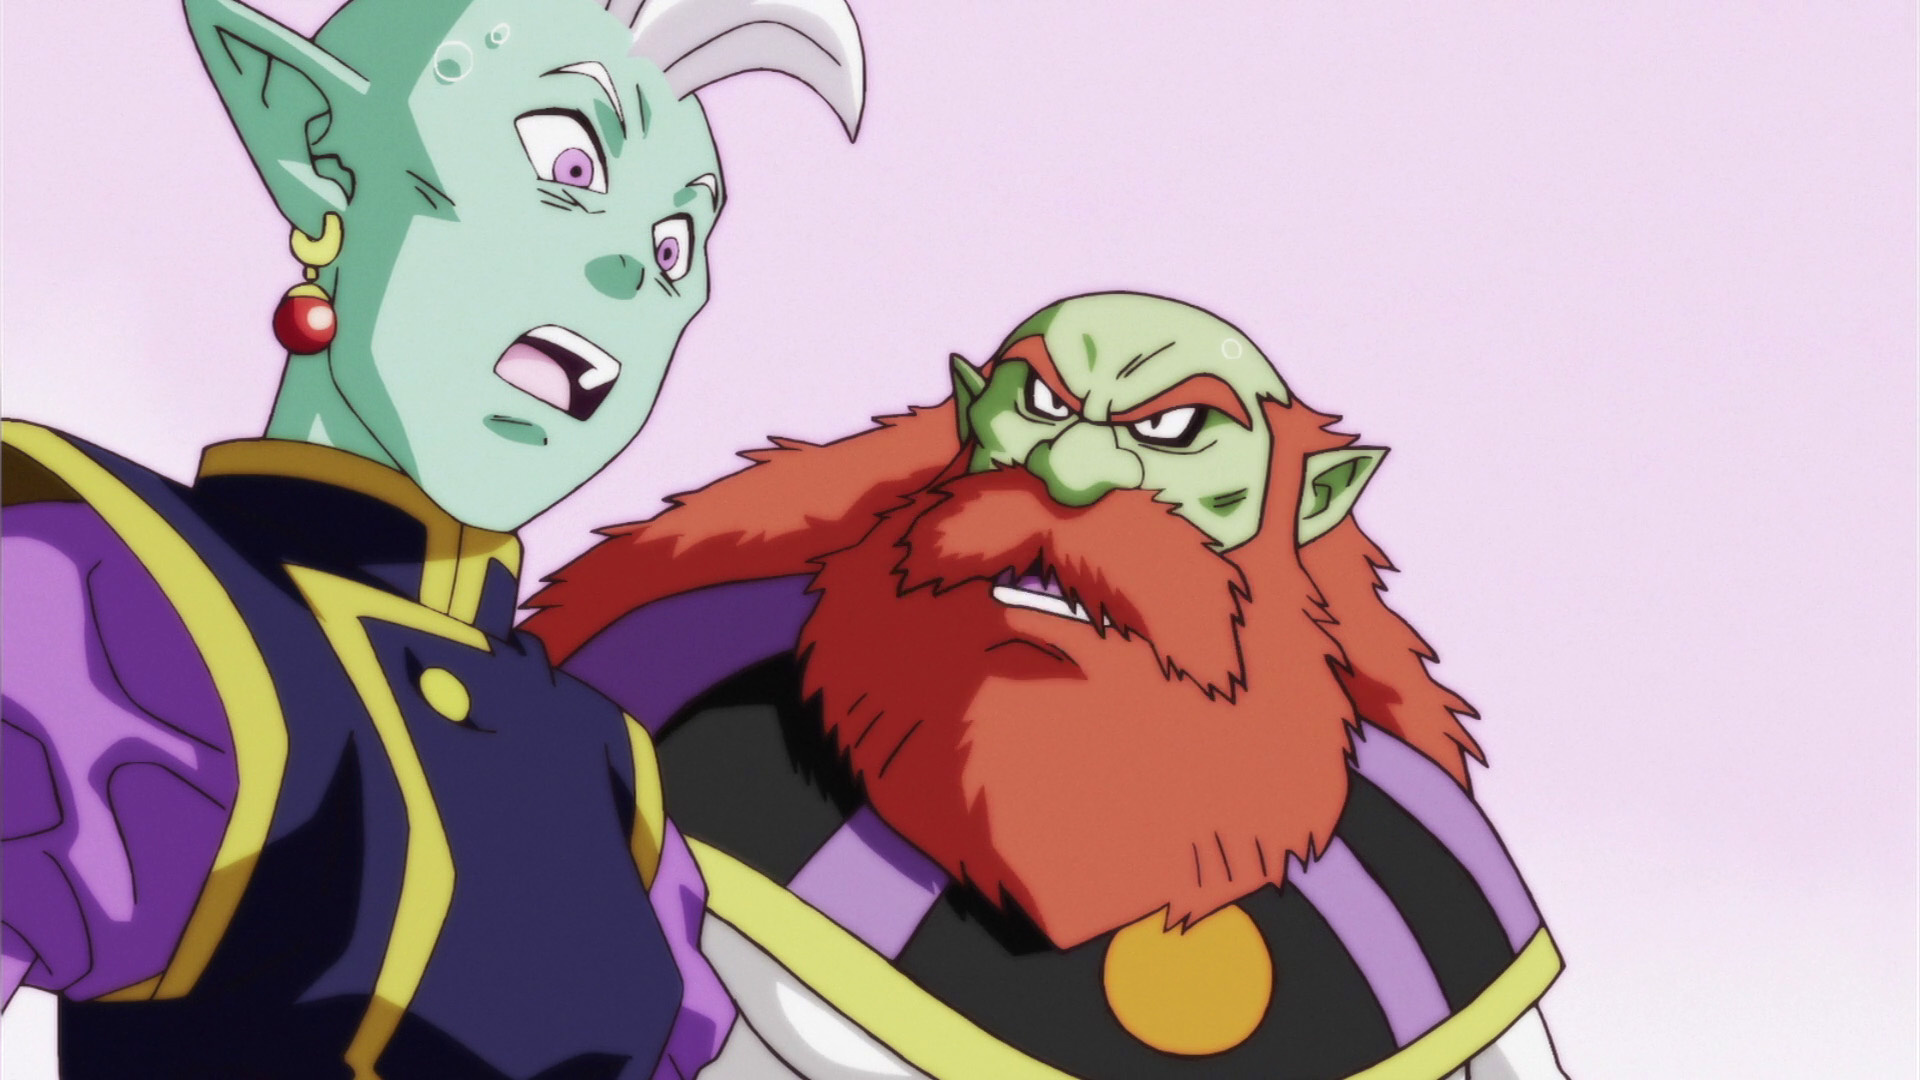 dragon_ball_super_095_1080p_kep.jpg